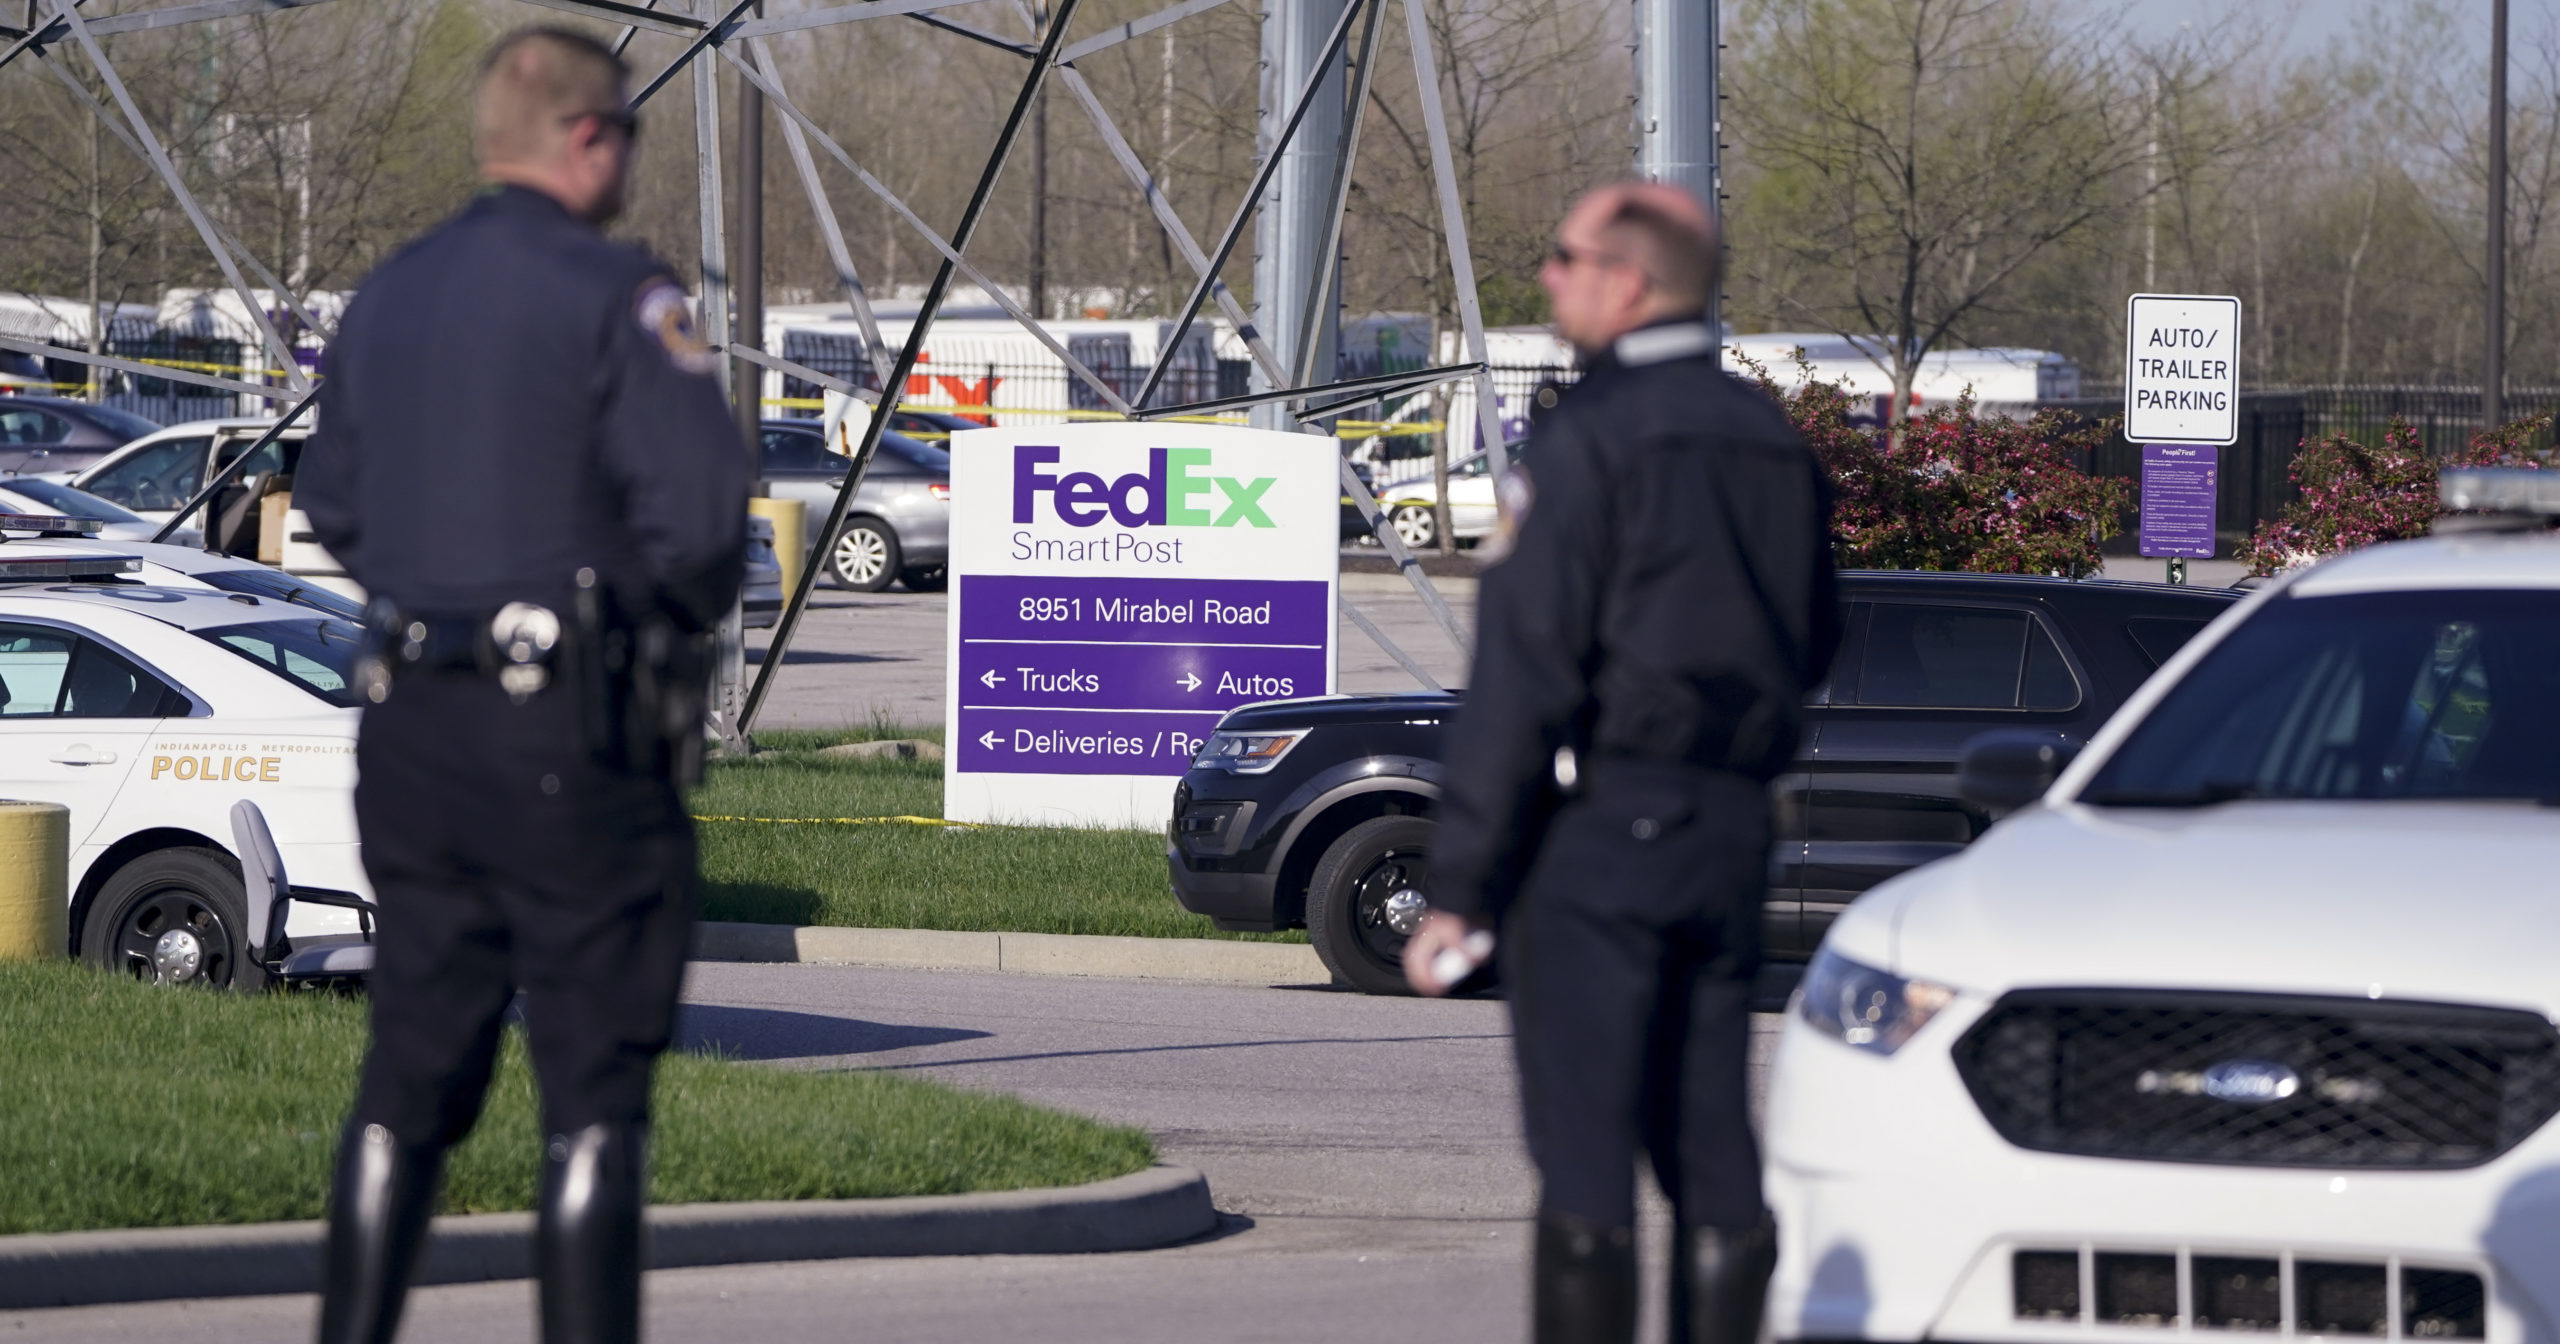 Police stand near the scene of a shooting at a FedEx facility in Indianapolis, Indiana, on April 16, 2021.